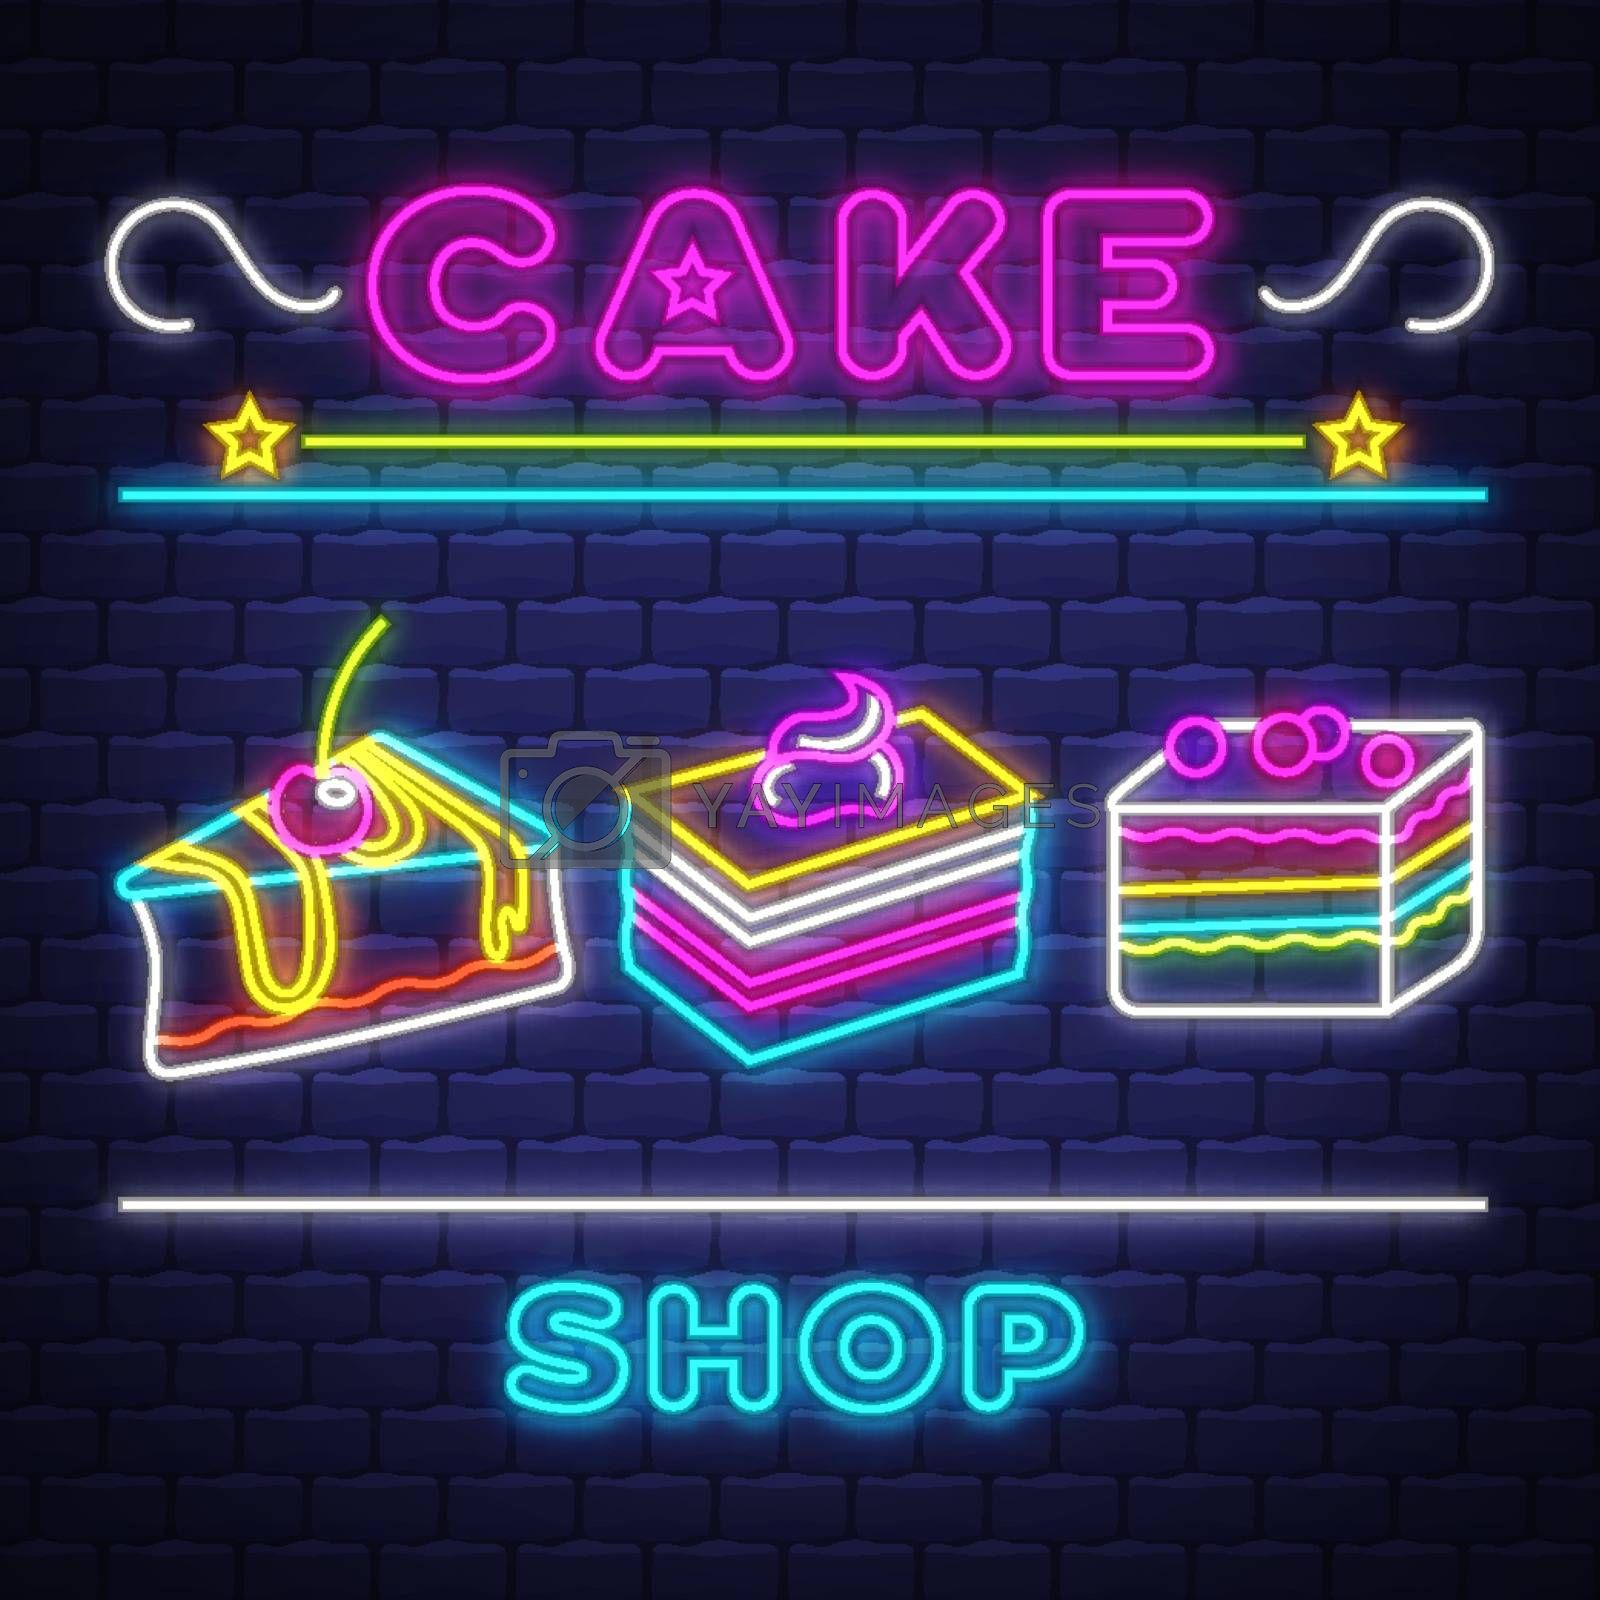 Cake Shop - Neon Sign Vector. Cake Shop - neon sign on brick wal by balasoiu